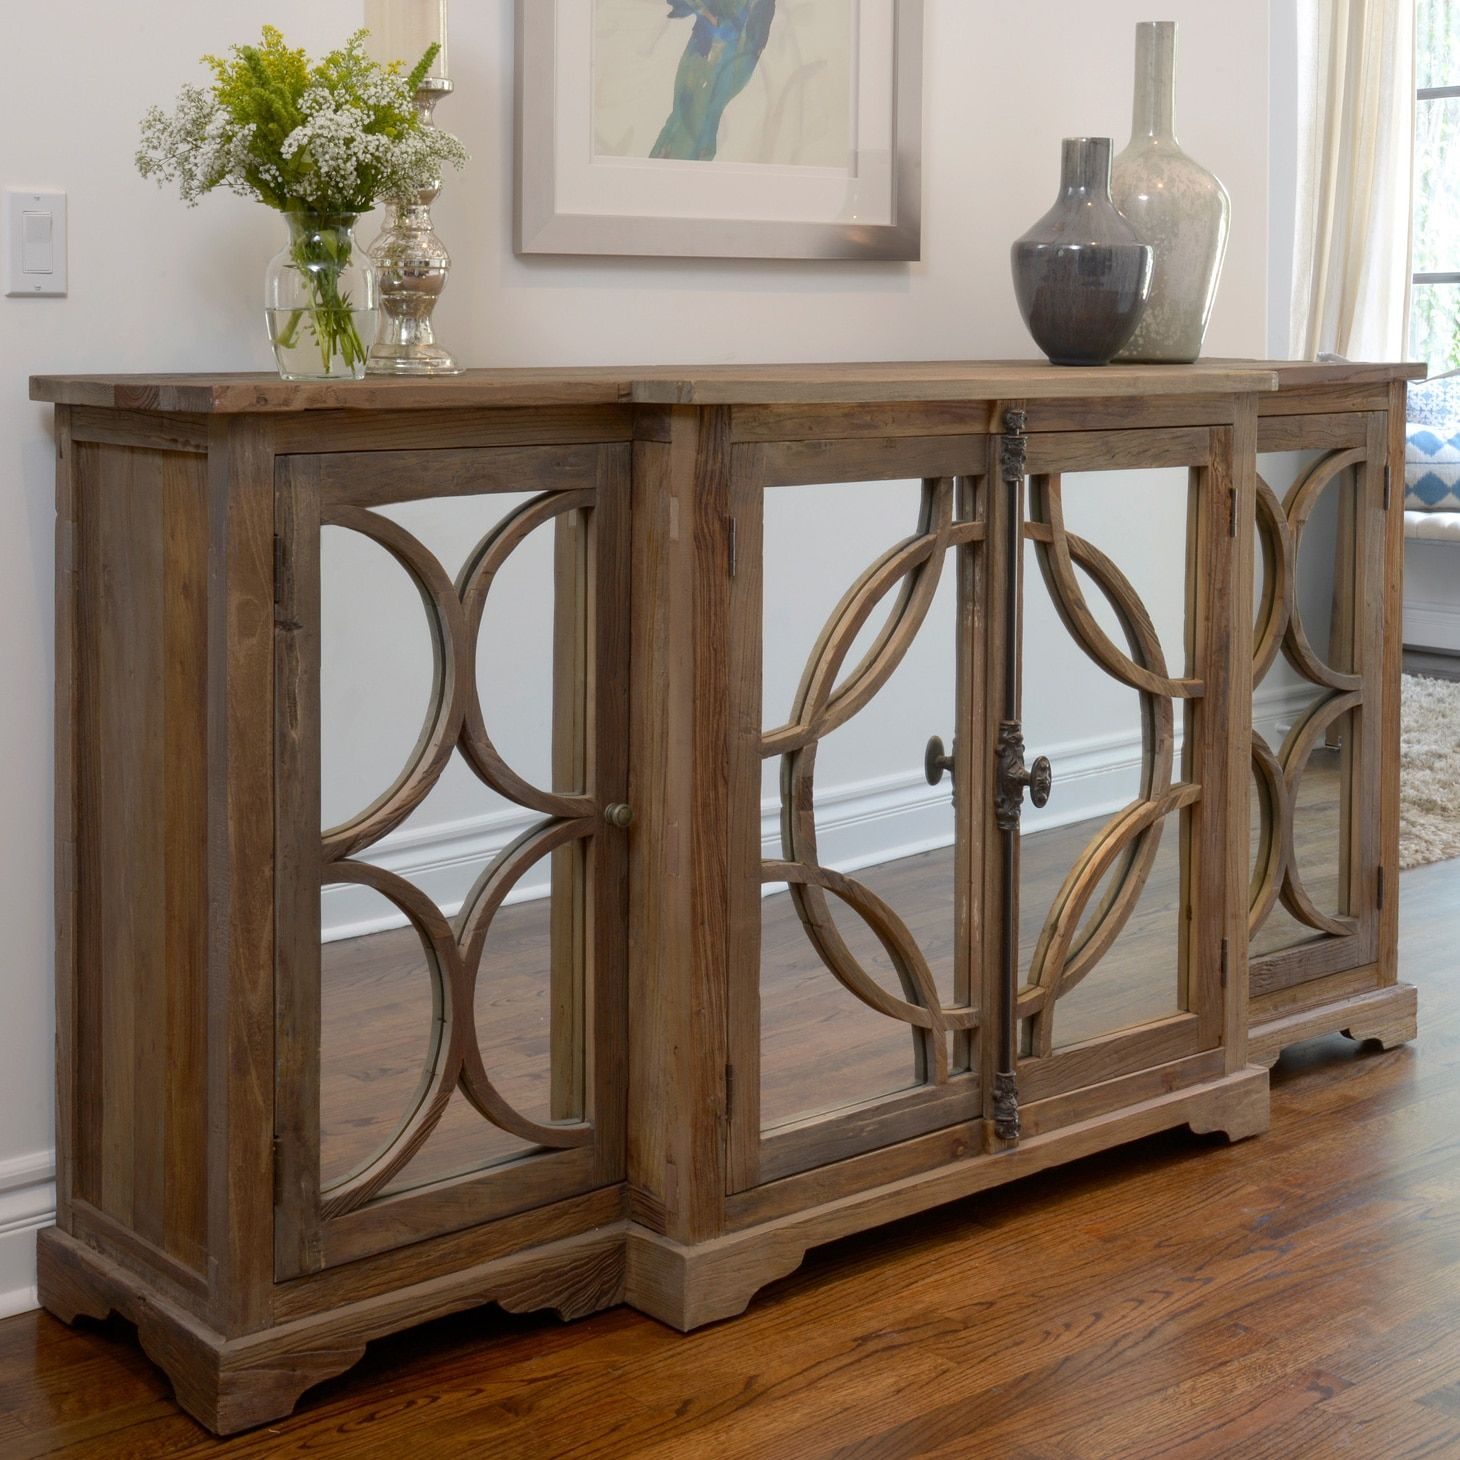 mirimyn kattie winsome accent bayside diondre door kara cabinet whitewashed four and vivian astoria windham winning cabinets chests colombier target small white one antique table